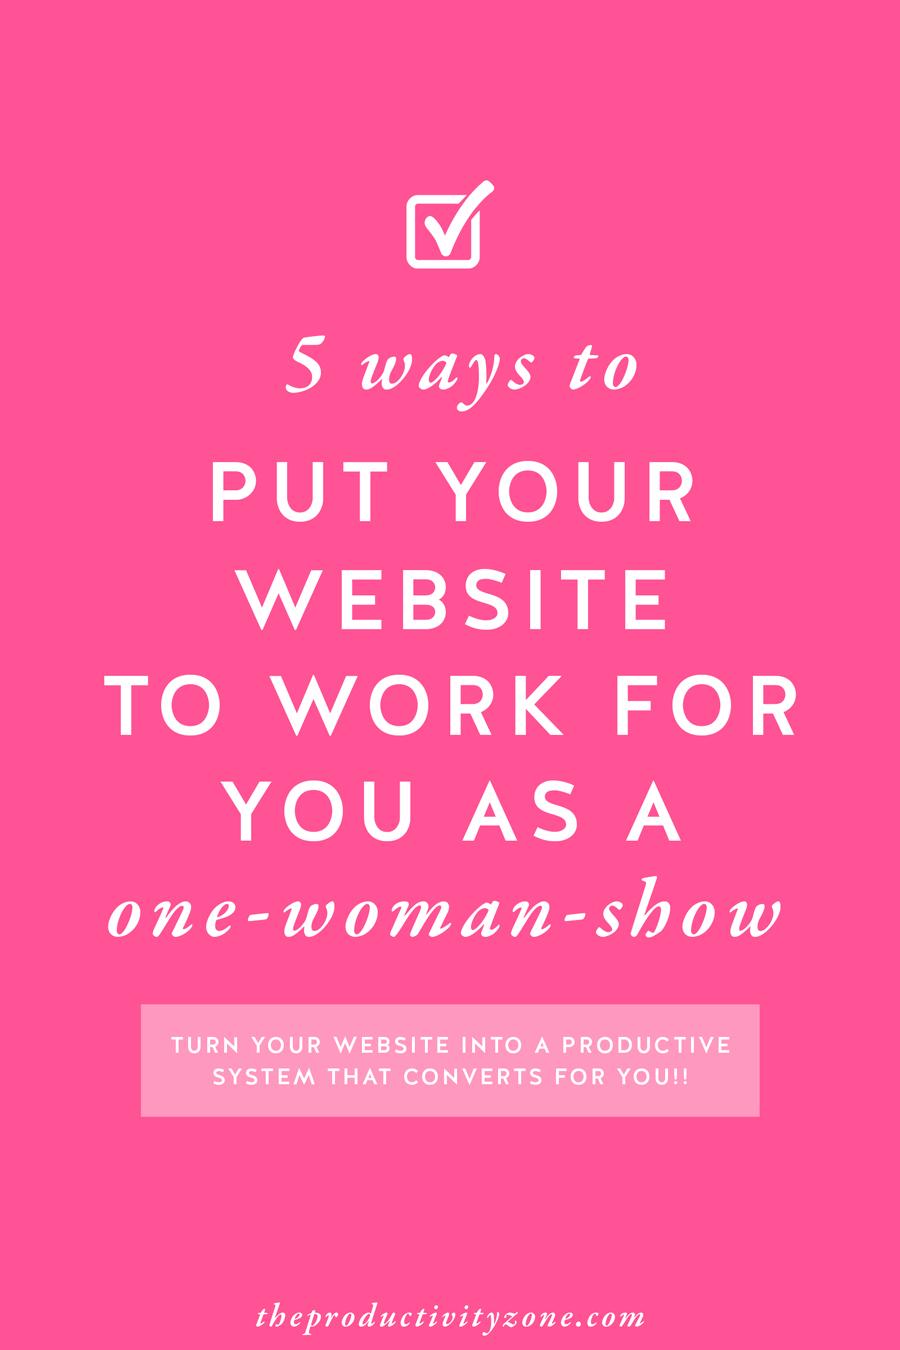 Turn your website into a conversion machine with Megan Martin Creative's tips for putting your website to work for you as a one-woman-show!!